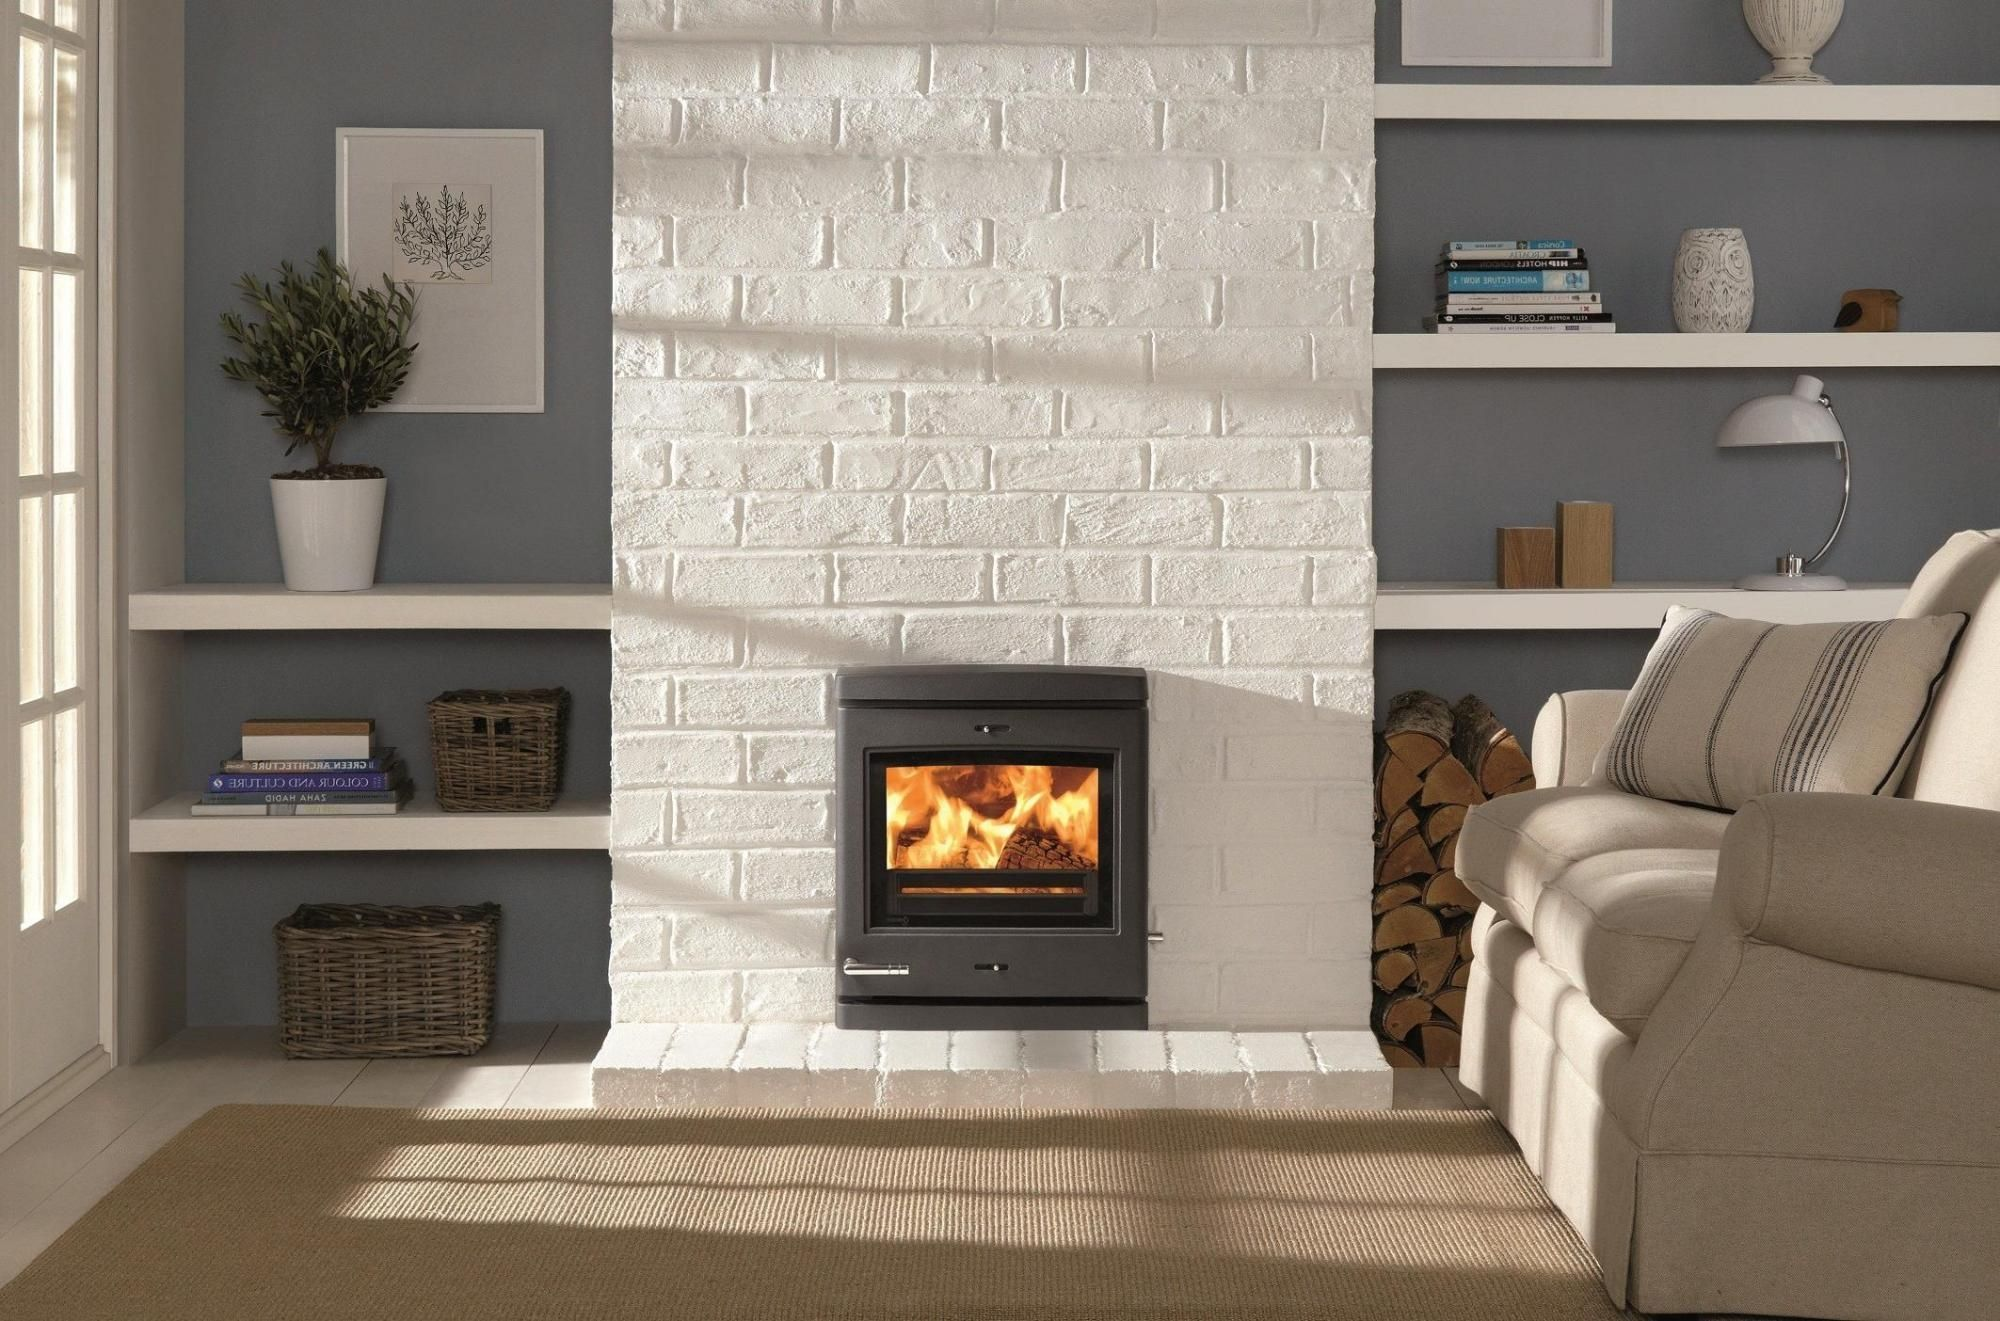 Electric Fireplace Ideas With Tv Above Google Search Kristina In